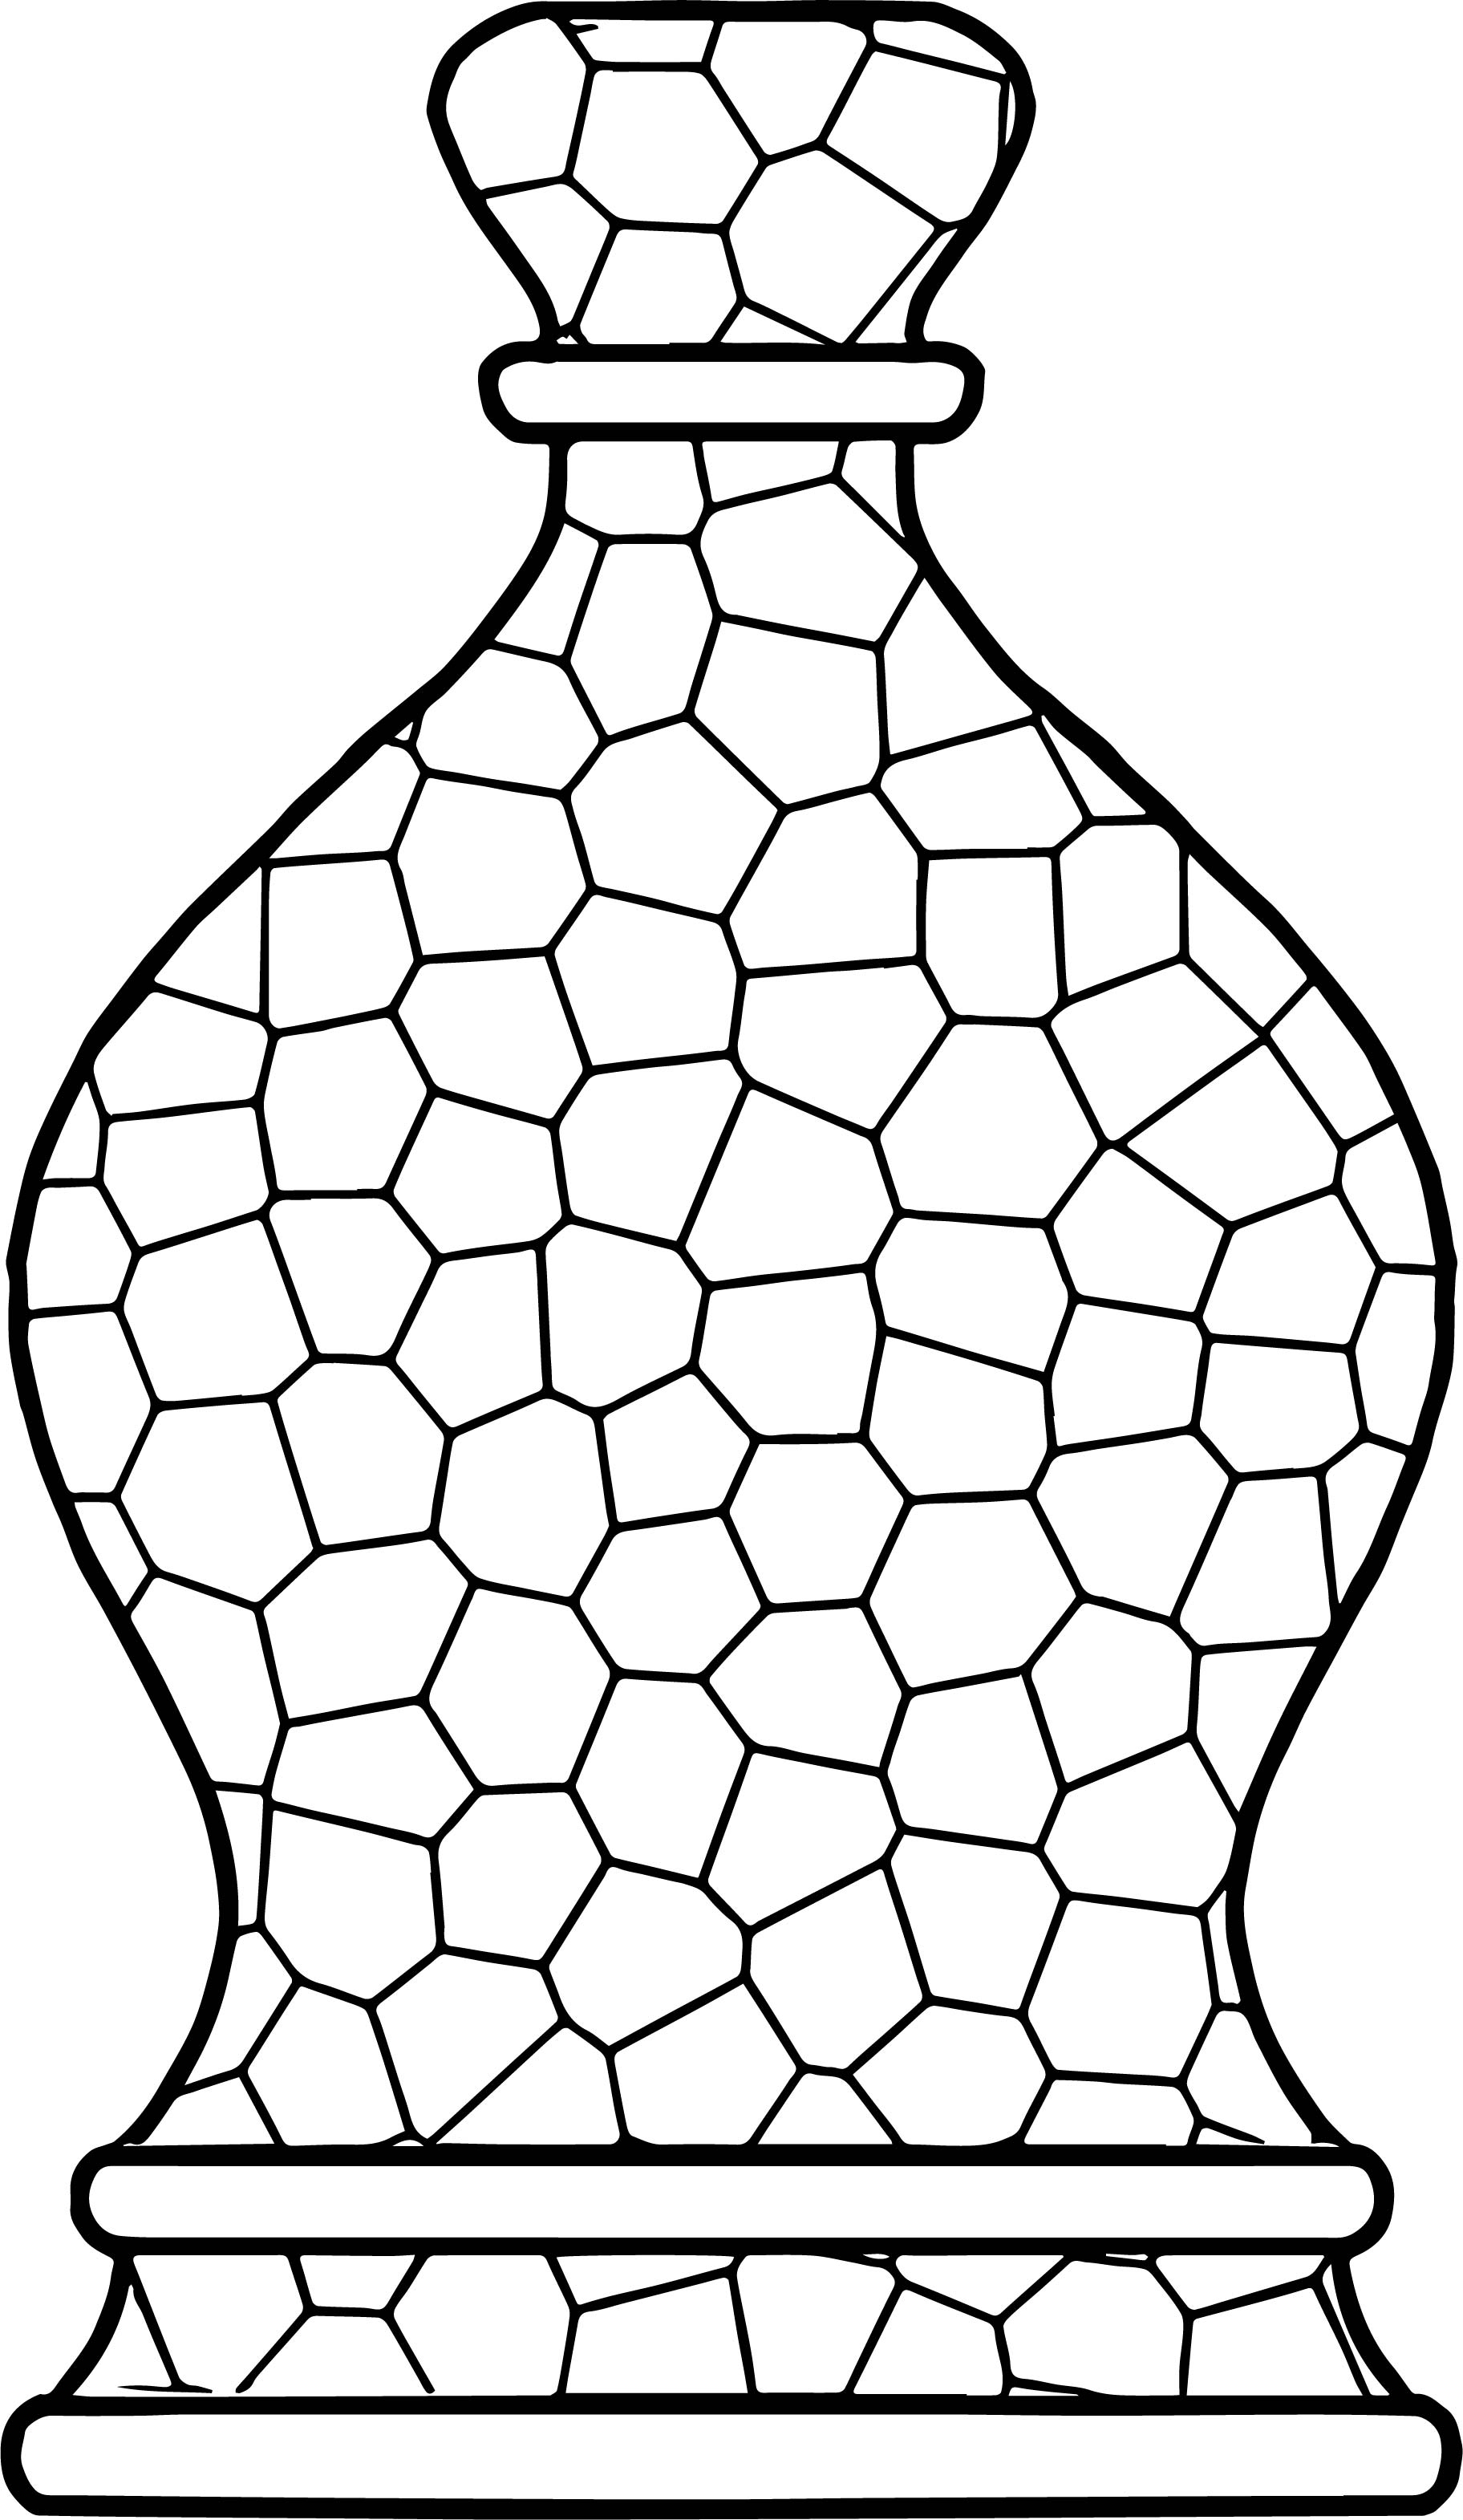 Bottle Stained Glass Coloring Page | Wecoloringpage.com